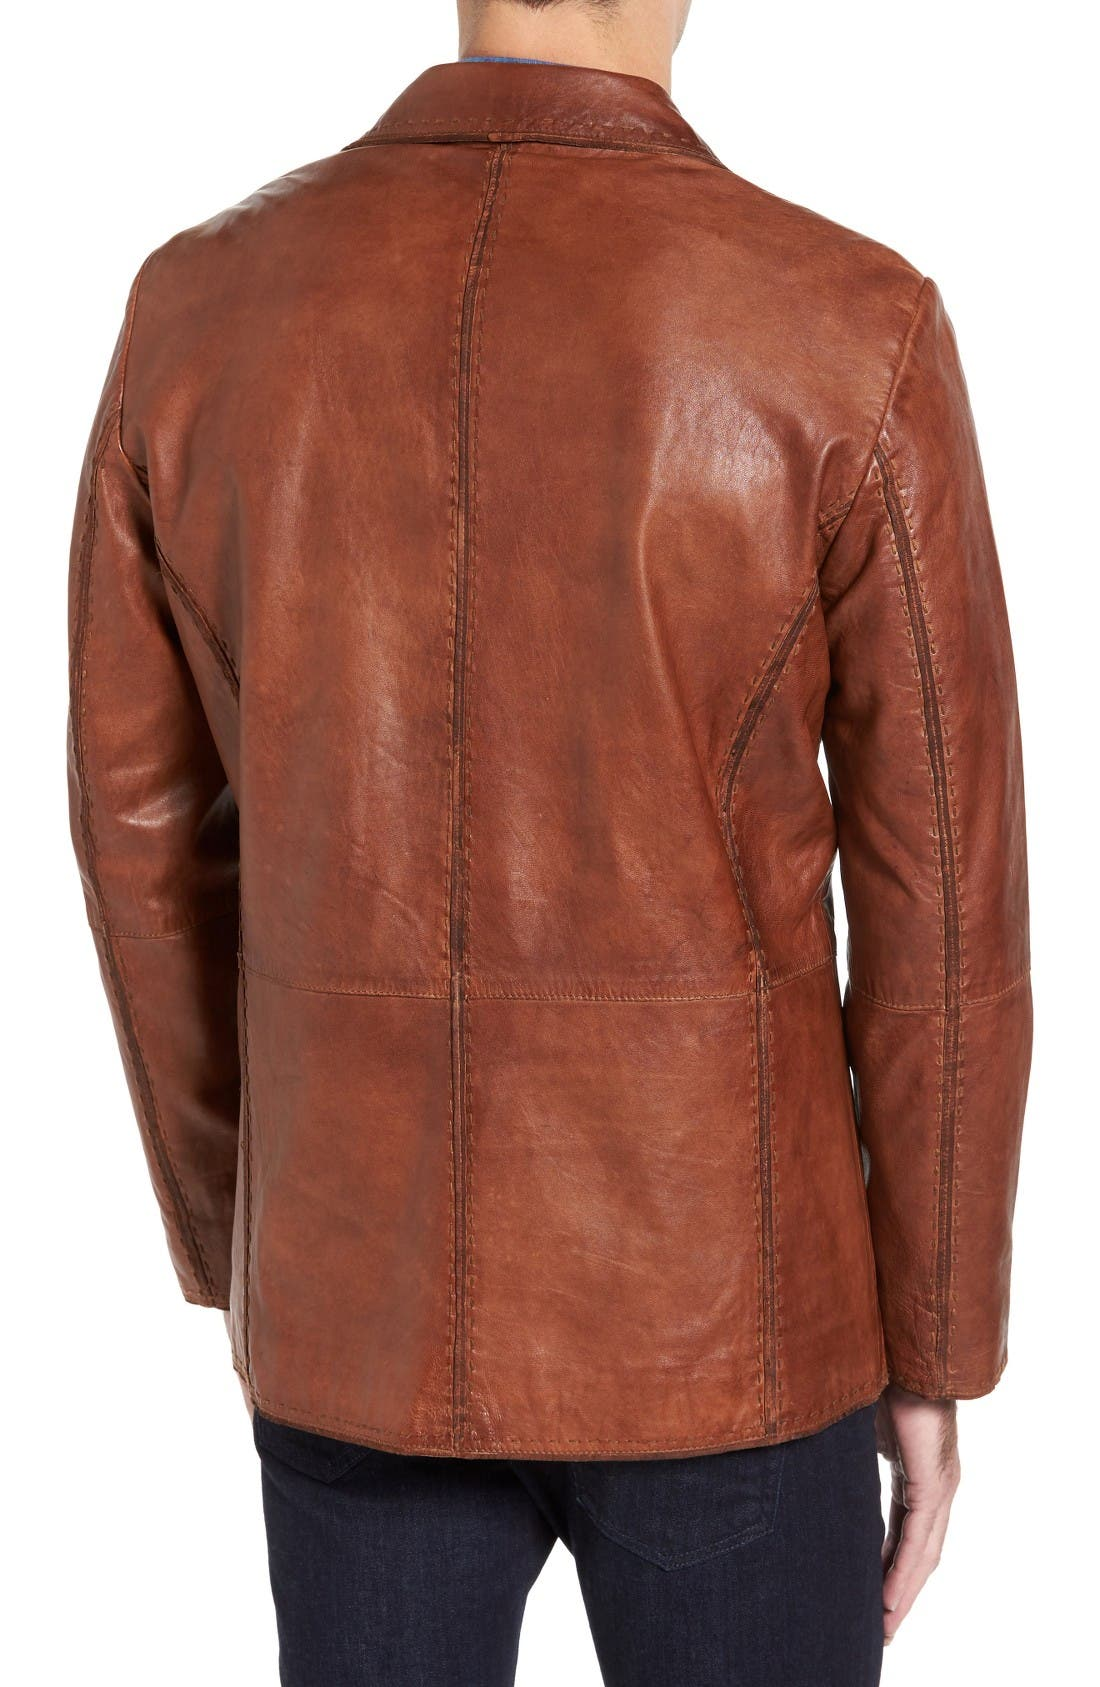 Lamb Leather Blazer,                             Alternate thumbnail 2, color,                             Cognac